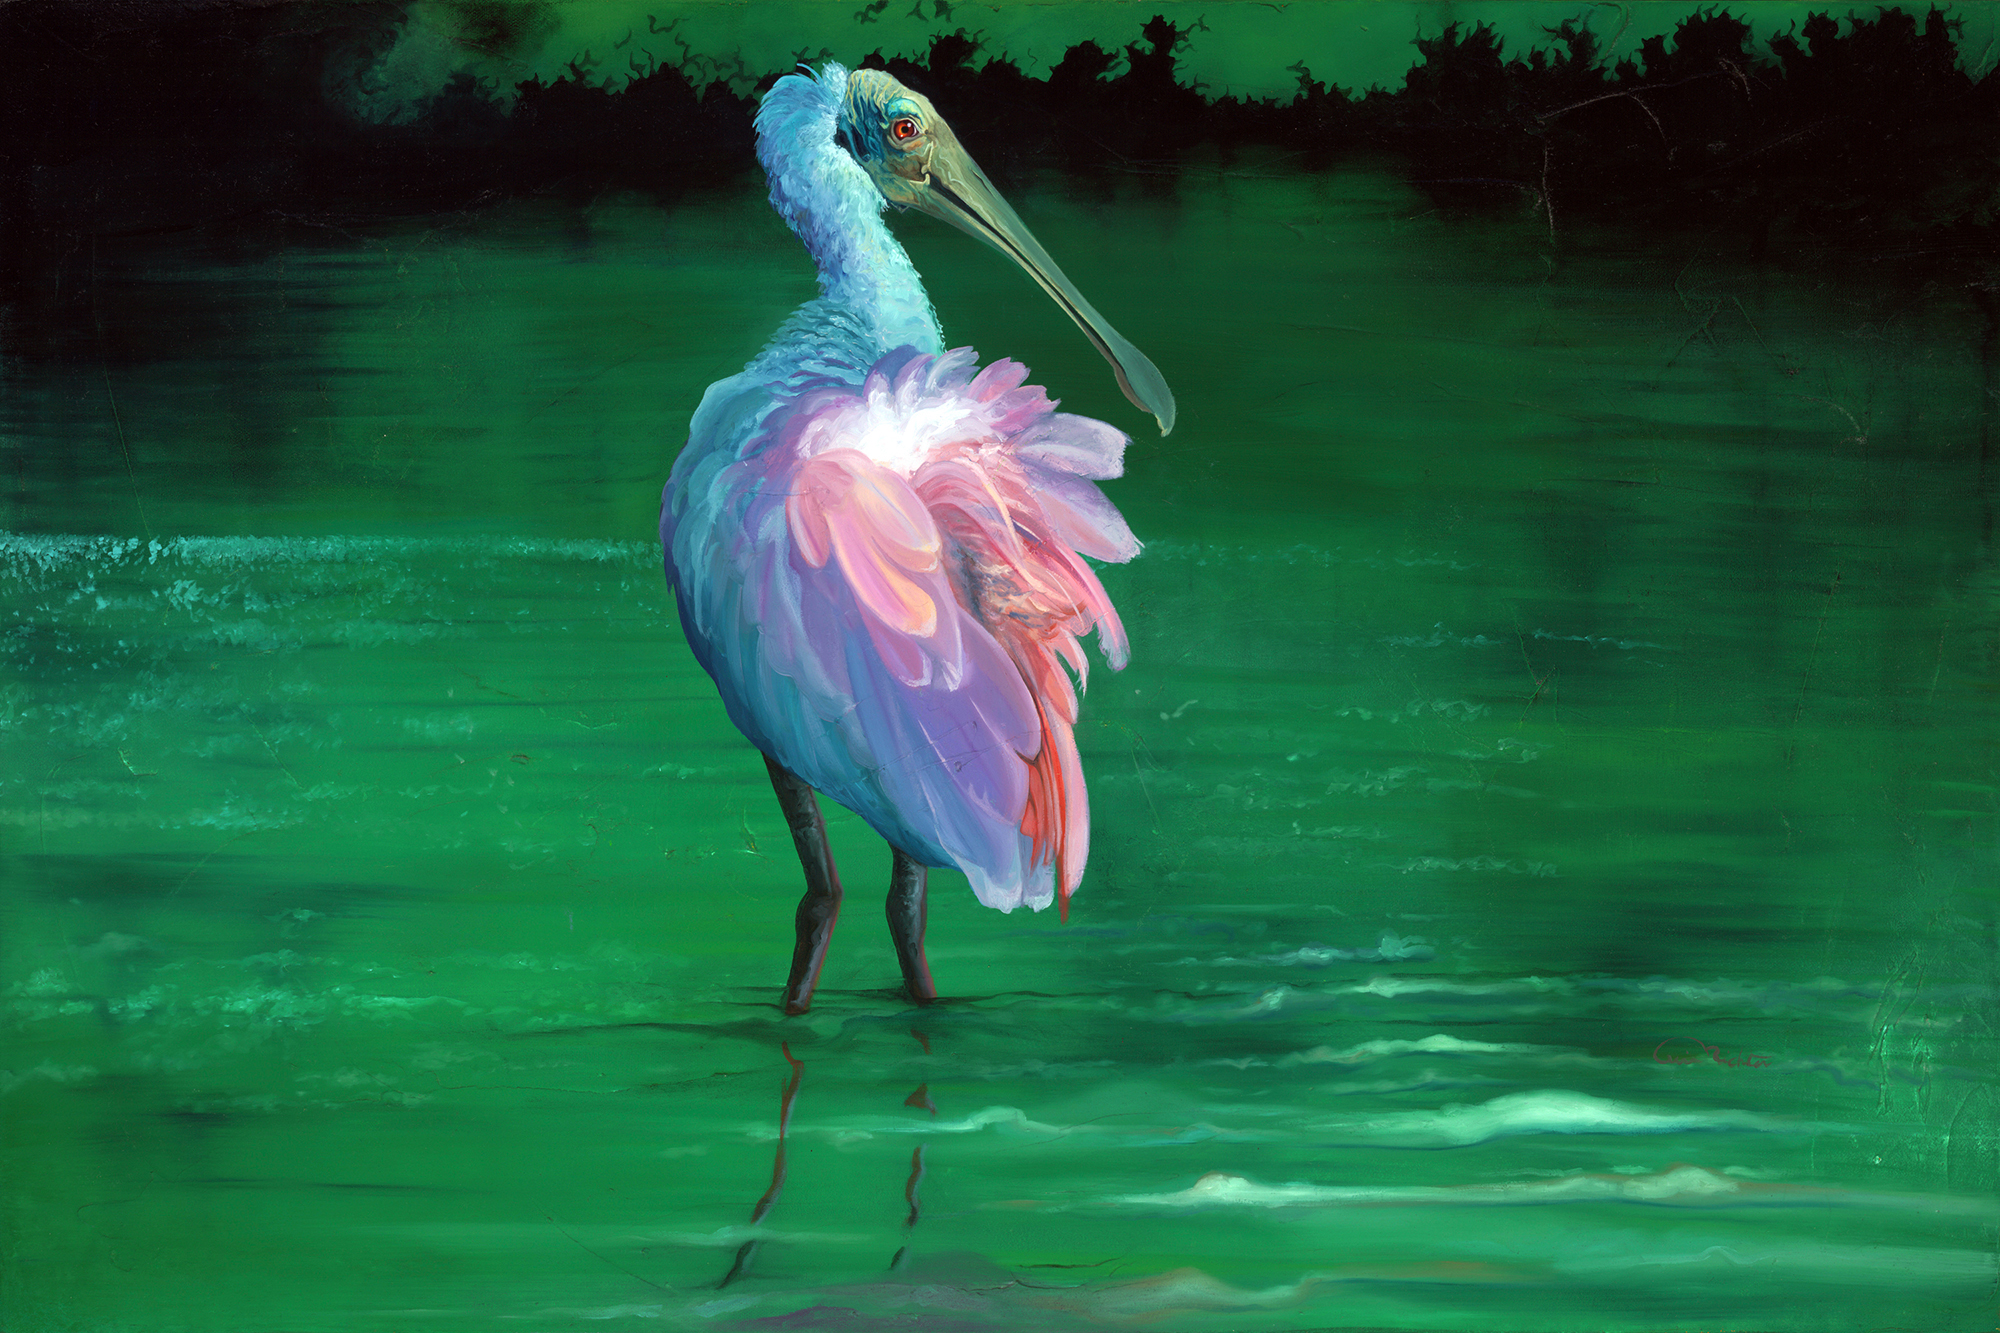 "Spoonbill Original Artwork Oil on Canvas for sale ""On the Flip-side"" is a 24' h x 36' w of a Roseate Spoonbill standing in quiet waters."